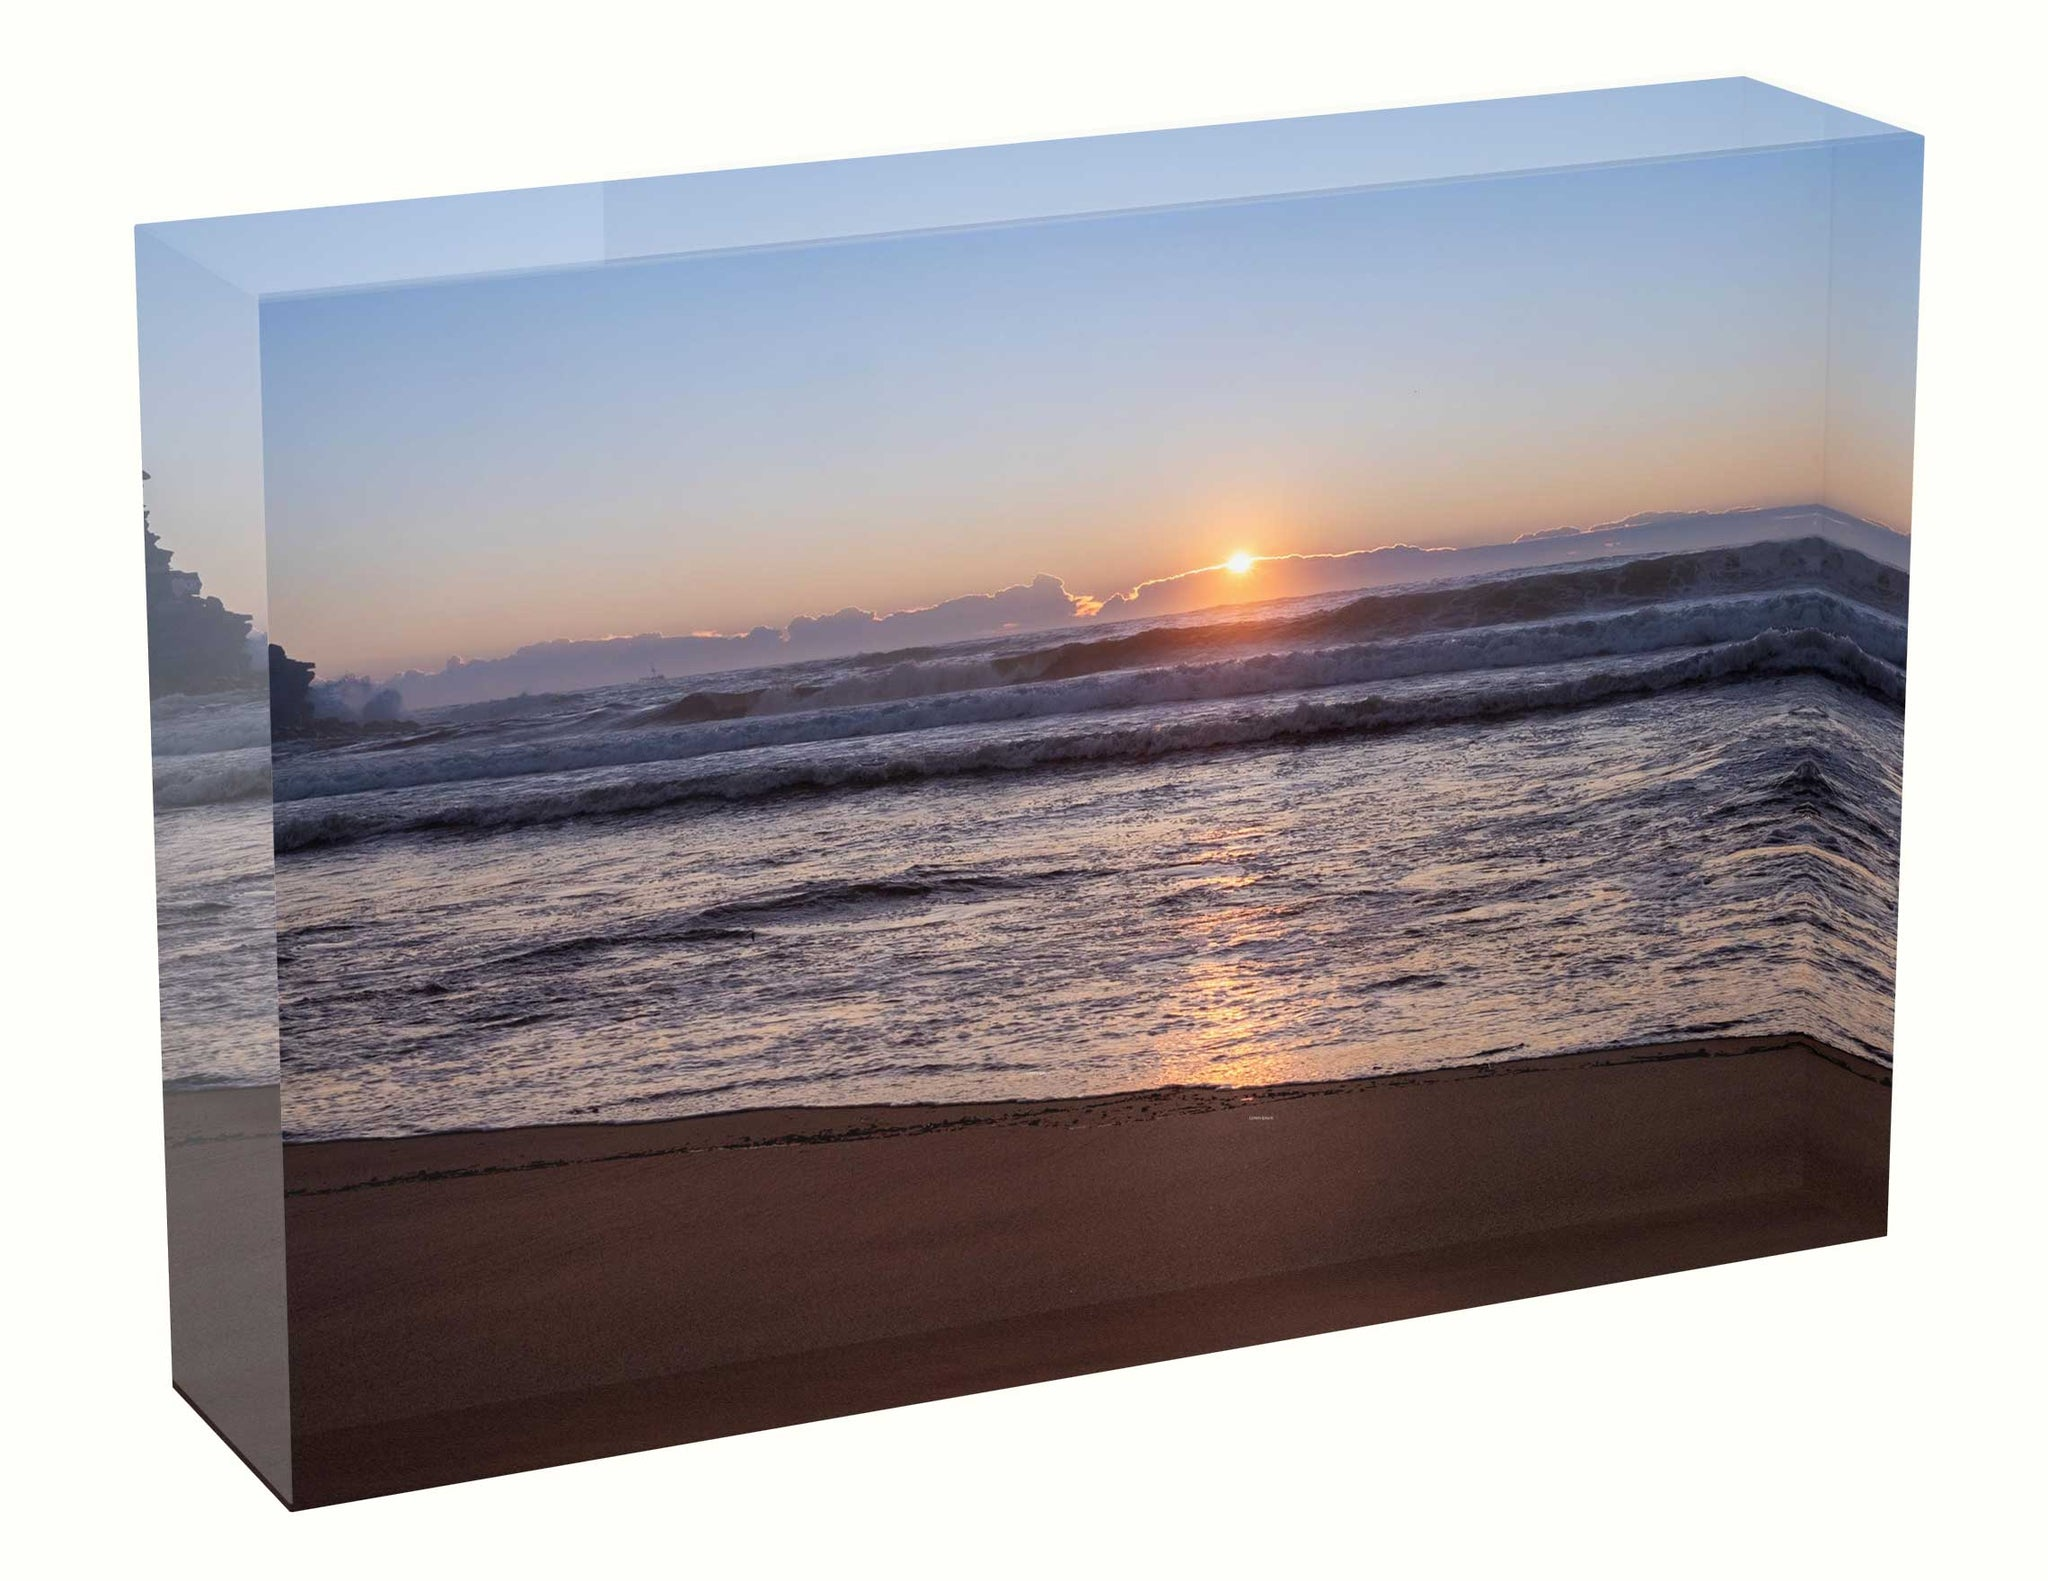 acrylic block Sunrise photo from the 24th March 2021 at Manly beach in Sydney Birthsunrise unique gift